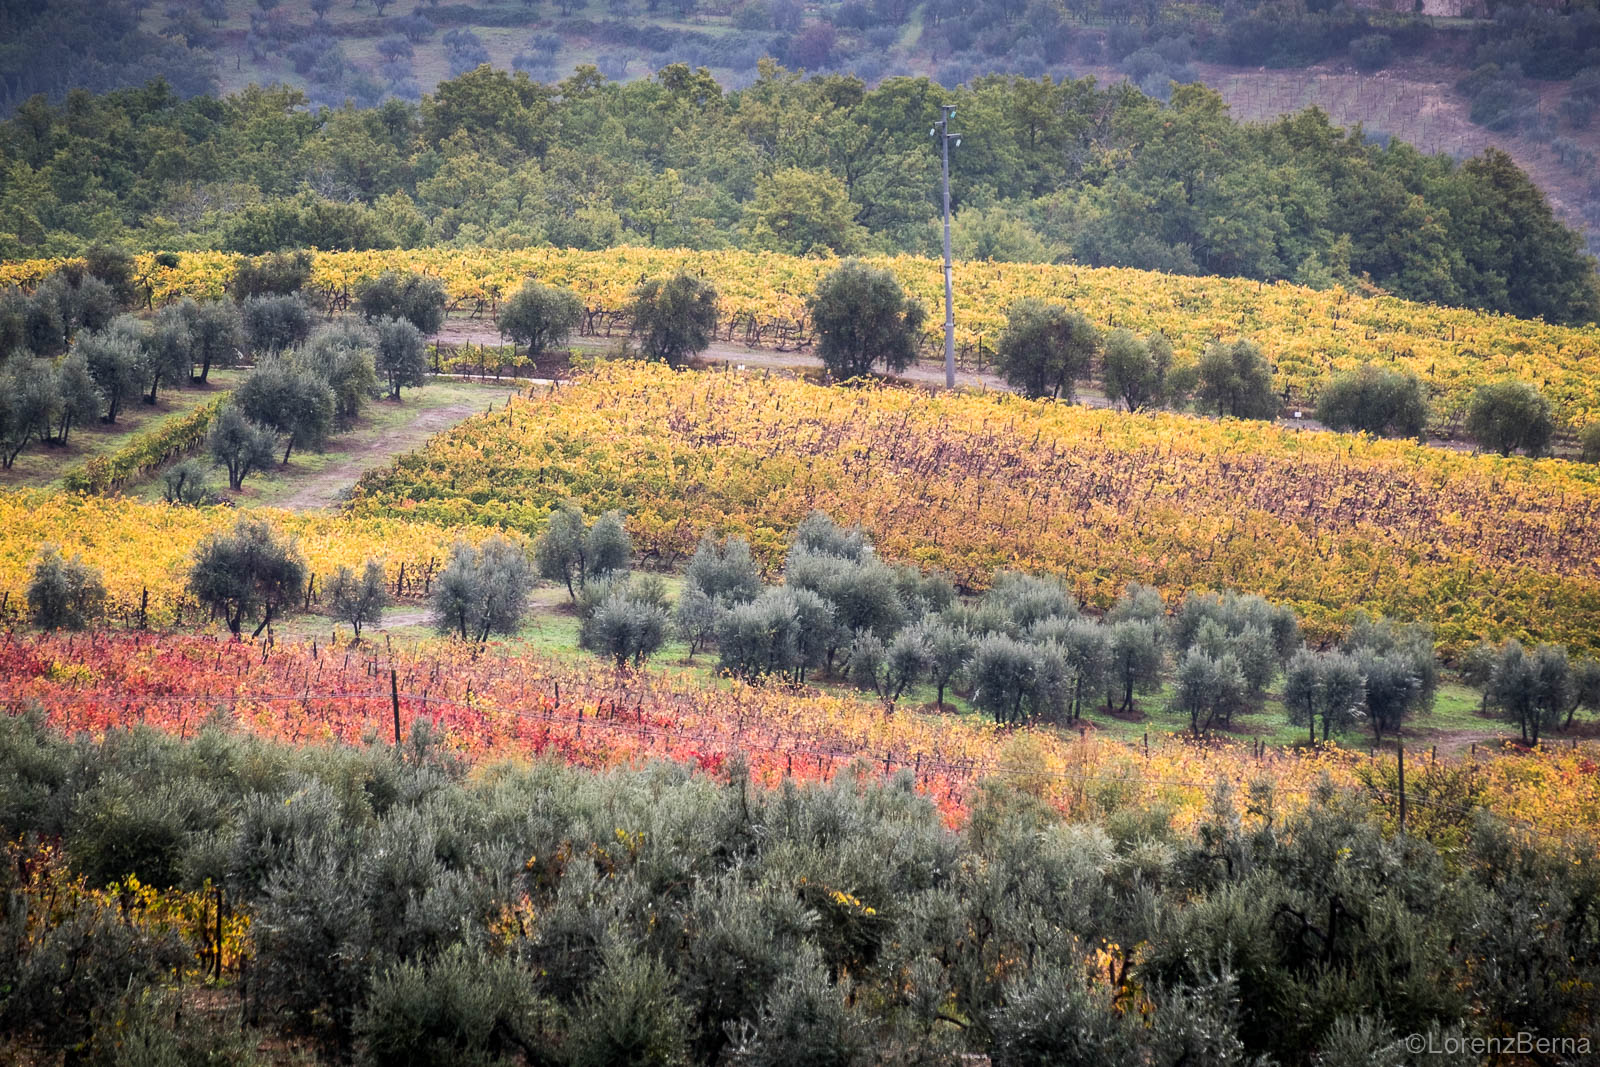 Chianti fields in autumn, Tuscany, Italy